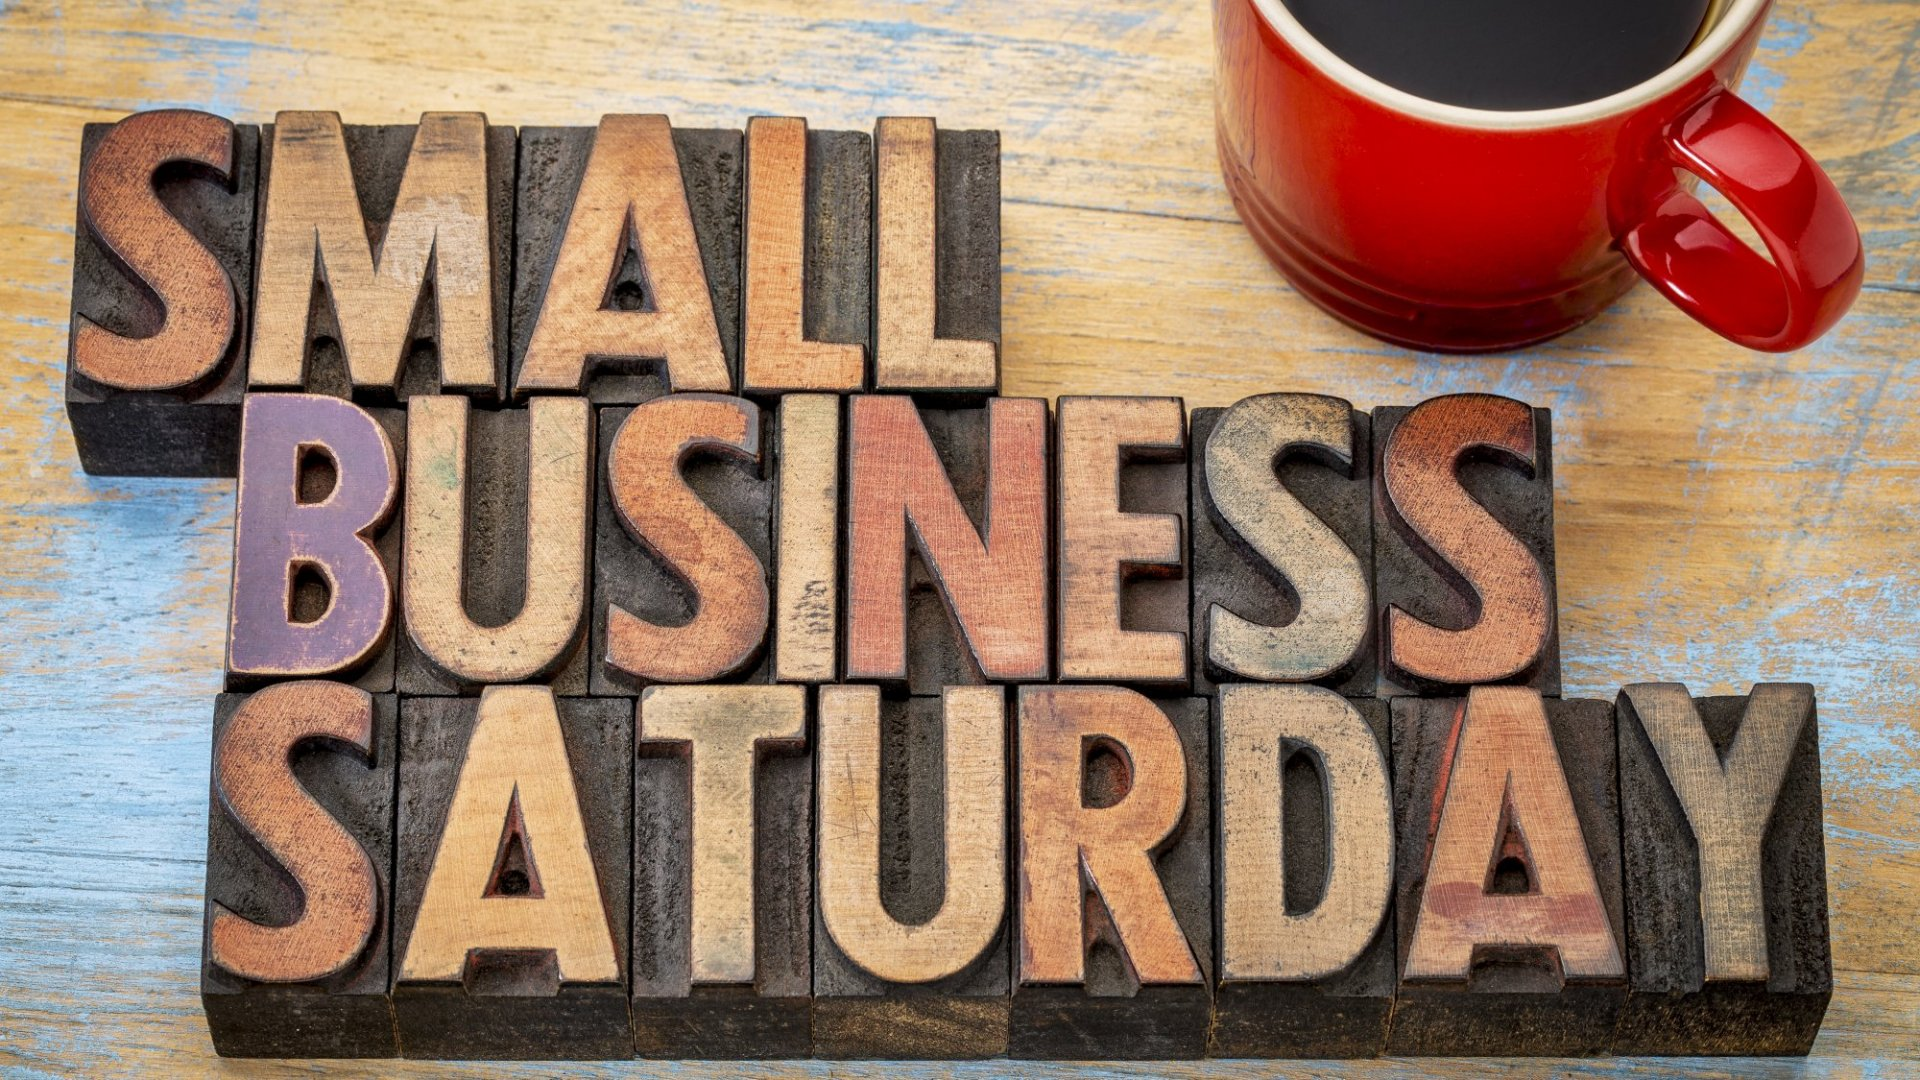 3 Savvy Marketing Tips for Small-Business Saturday